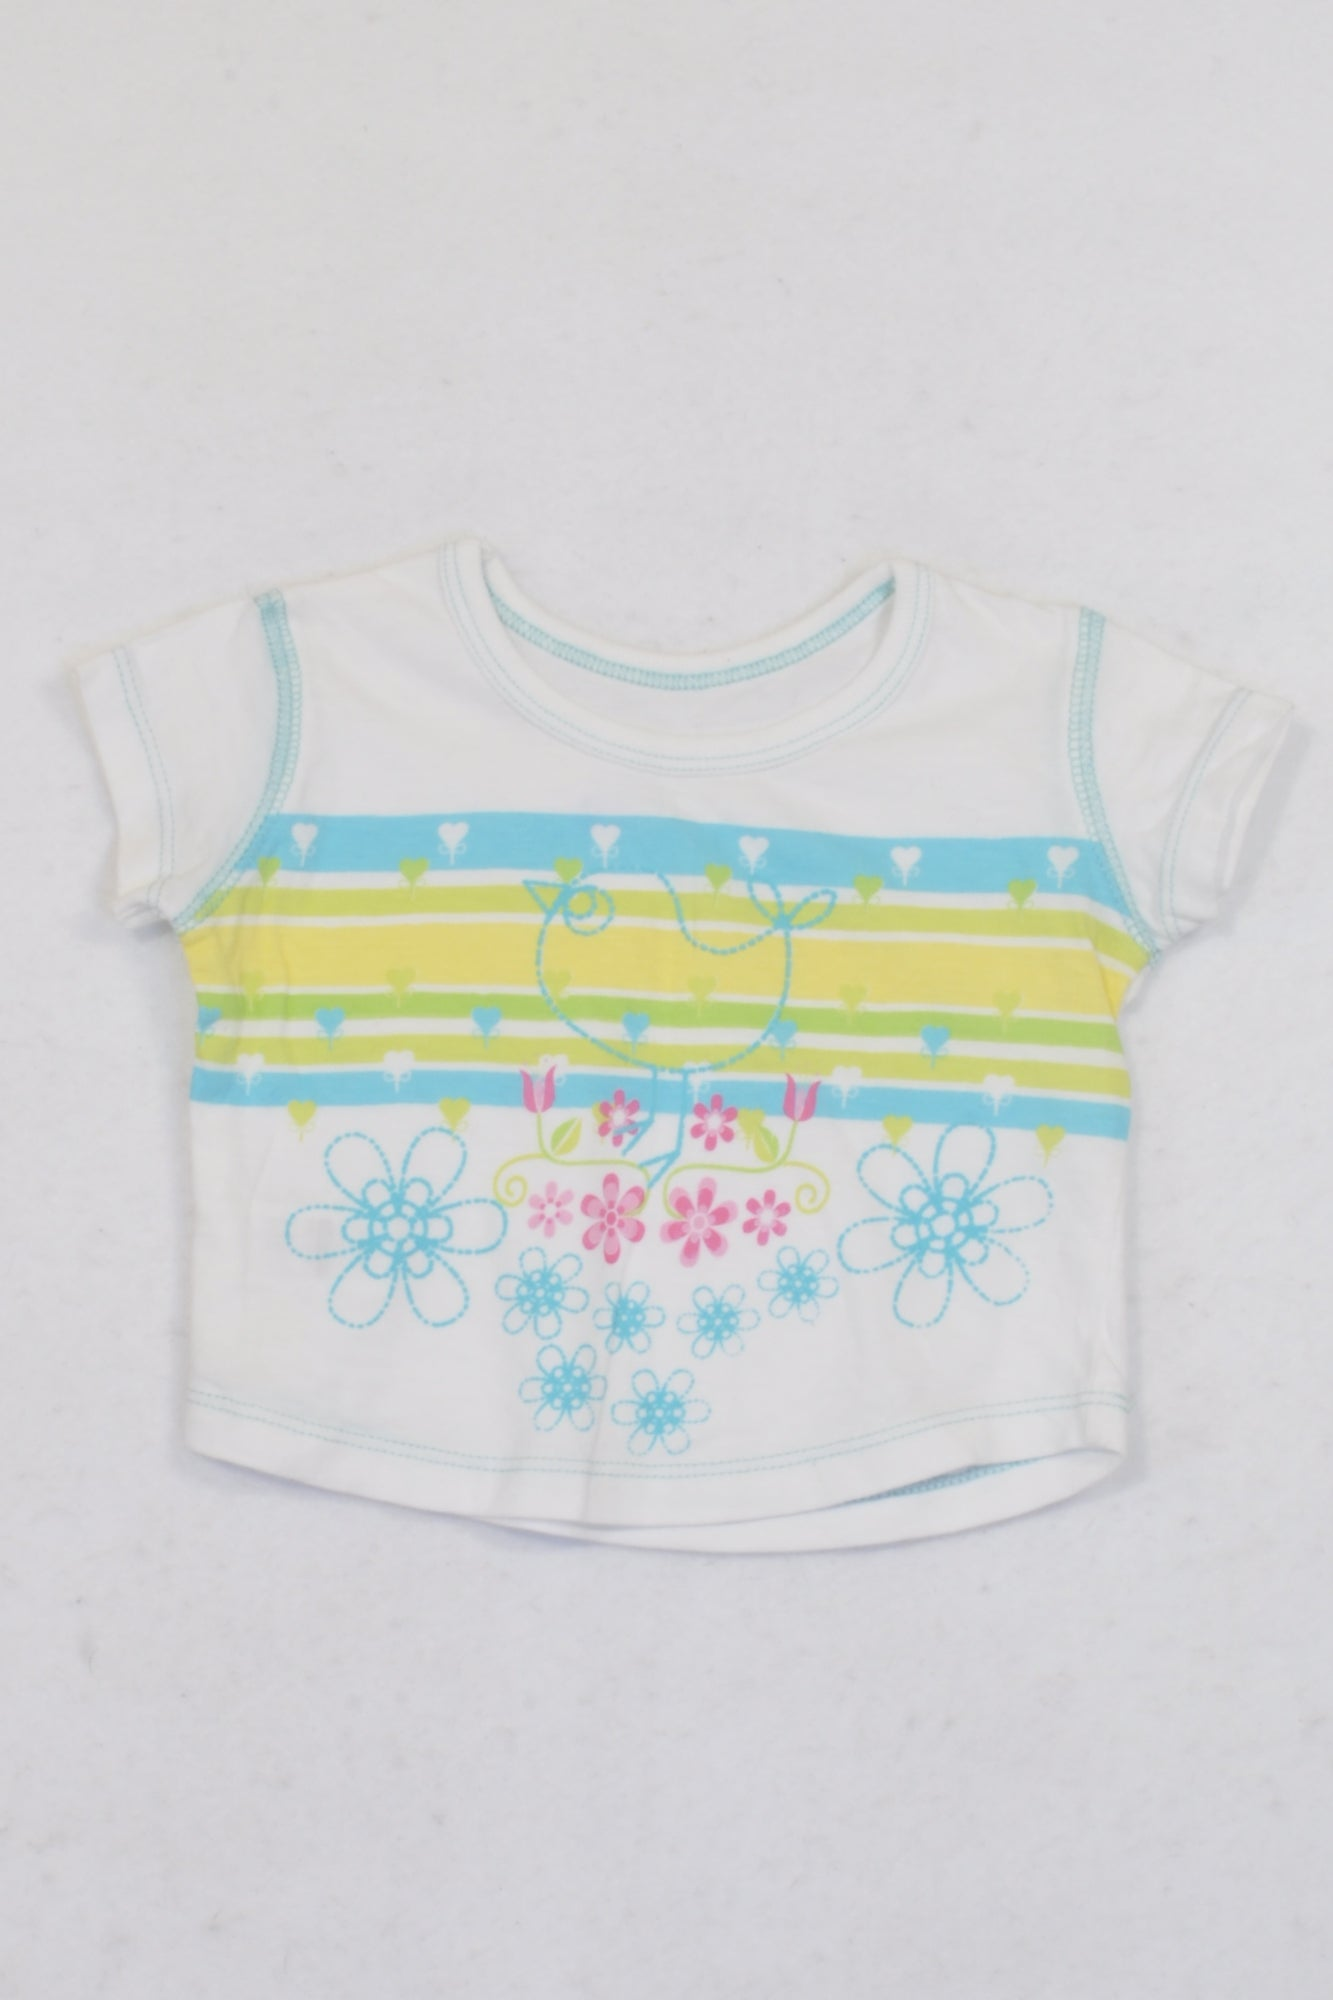 Woolworths White Tweety Bird T-shirt Girls 3-6 months